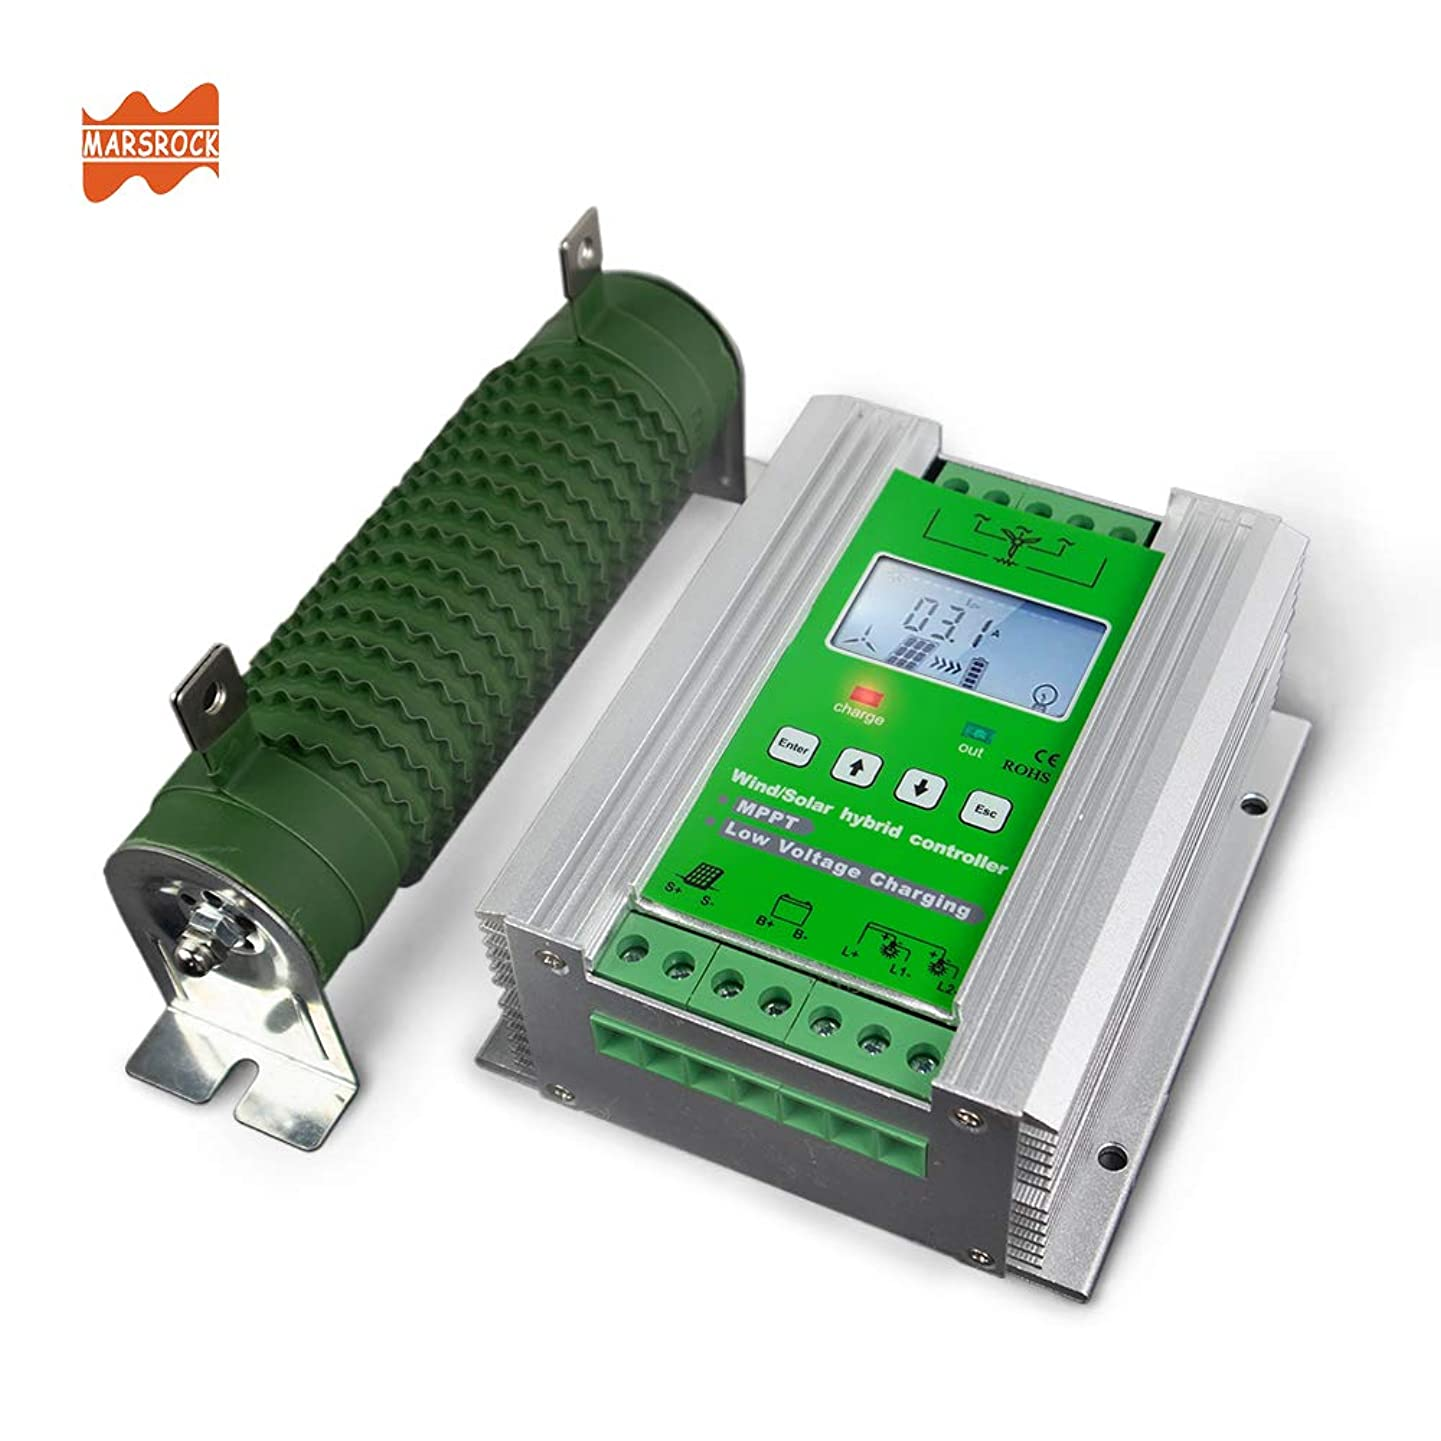 1400W 12V/24V Off Grid MPPT Wind Solar Hybrid Charge Controller Design for 0- 800W Wind with 0- 600W Solar Panel system with Booster Function and Dump Load